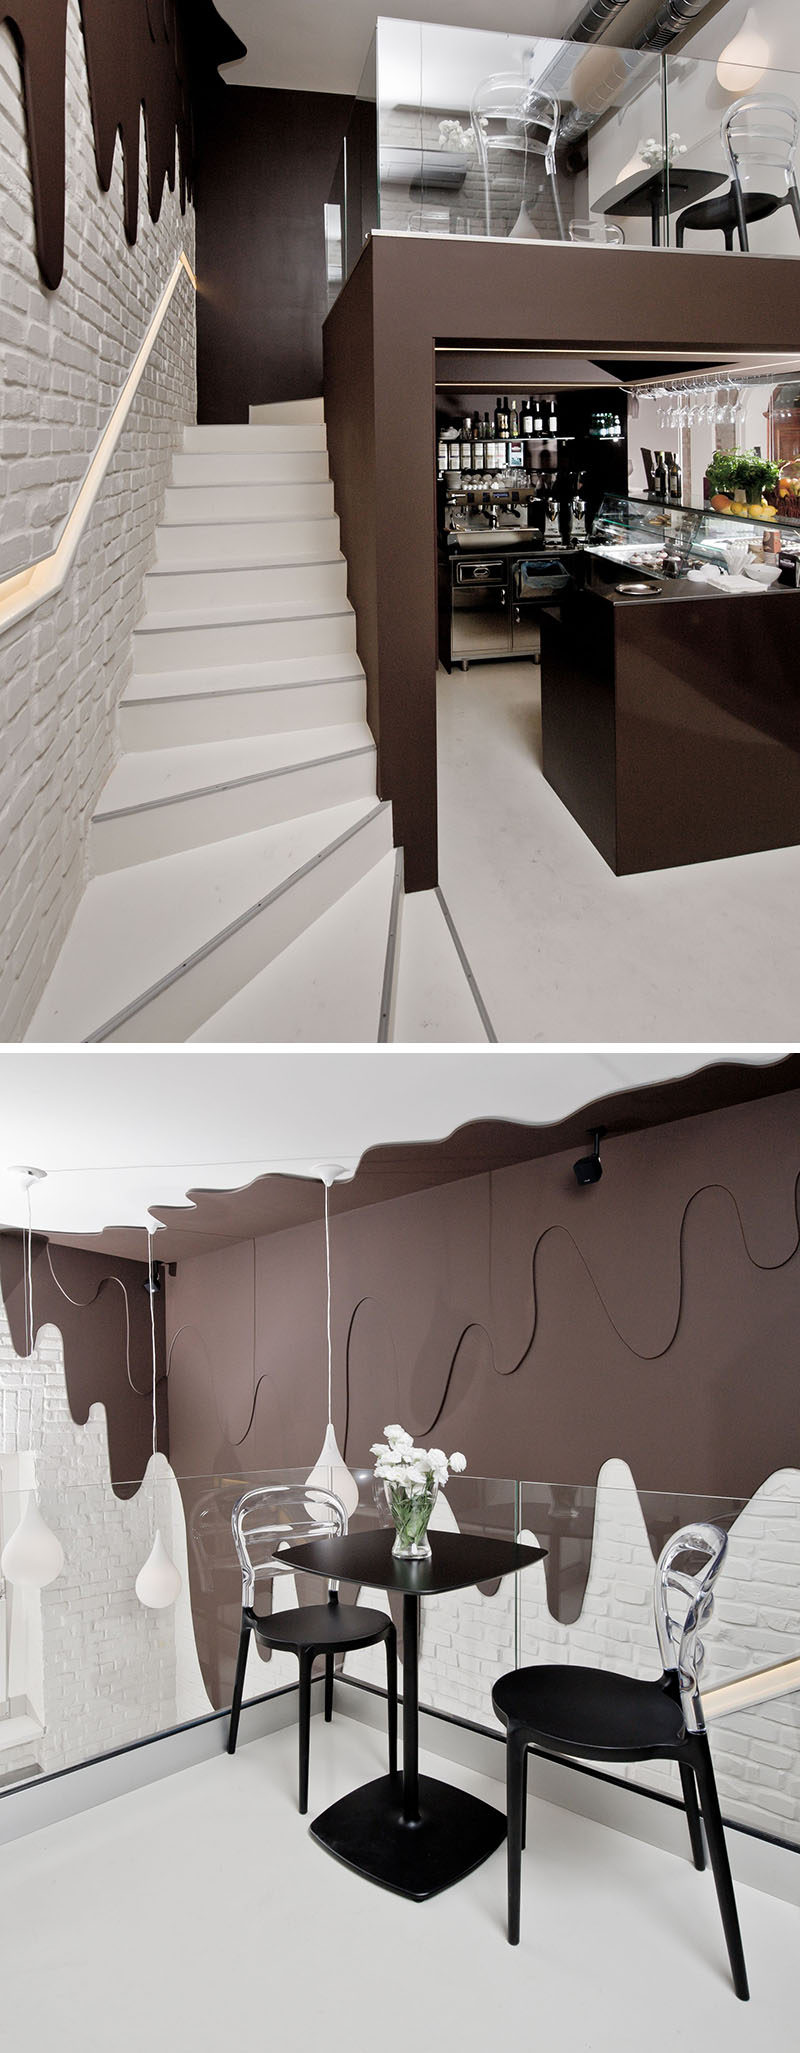 This modern chocolate shop and cafe design with two levels, has walls with 'dripping dark chocolate' and white pendant lights representing 'milk drops'.